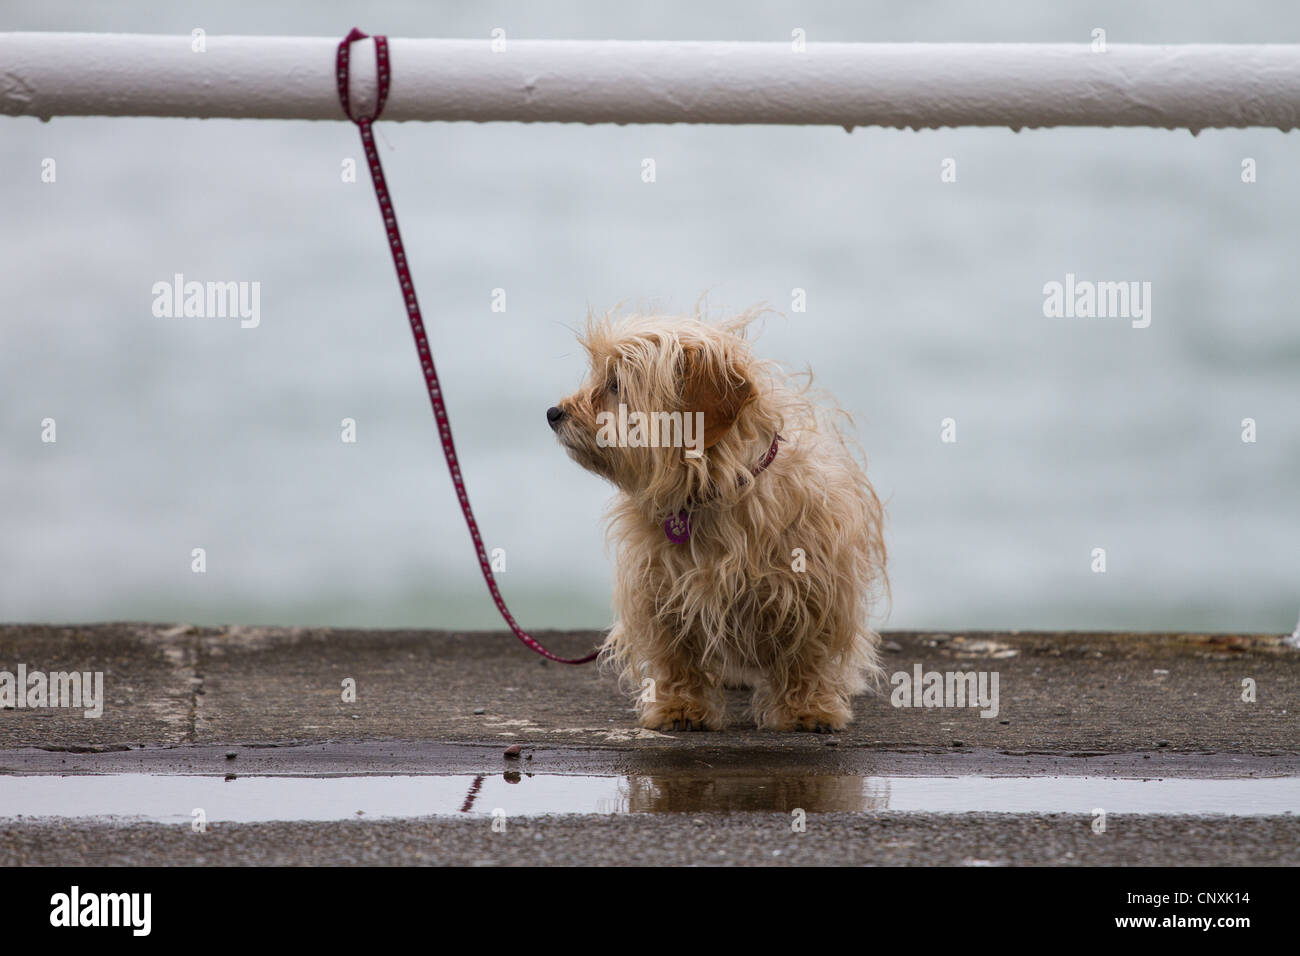 A small dog or puppy tied to a rail by the sea with a puddle. Looking rather downcast as though waiting for owner - Stock Image